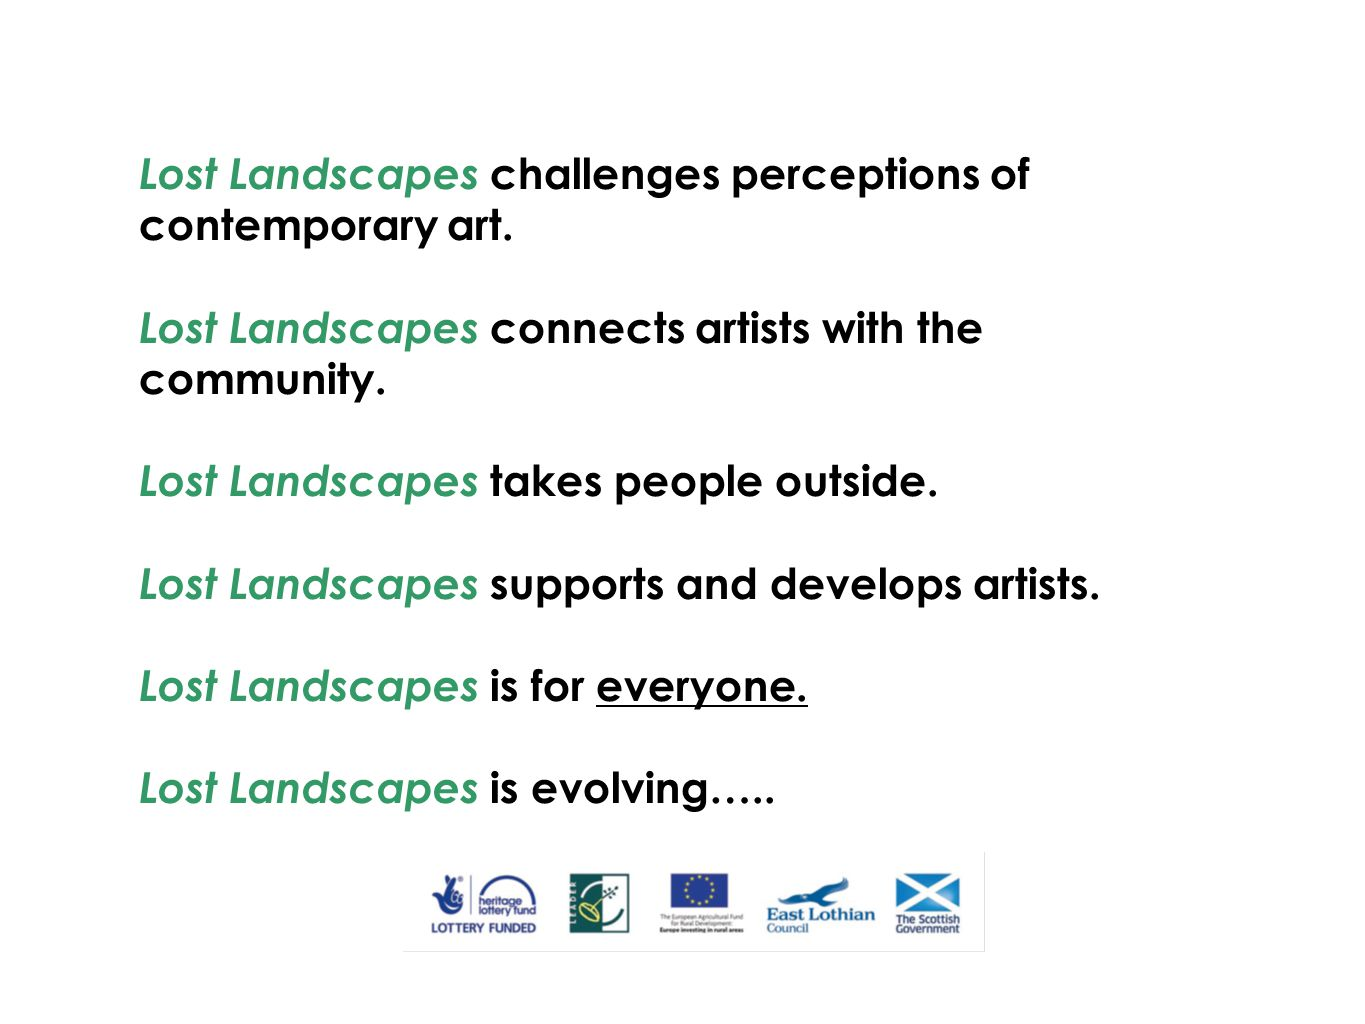 Lost Landscapes challenges perceptions of contemporary art. Lost Landscapes connects artists with the community. Lost Landscapes takes people outside.